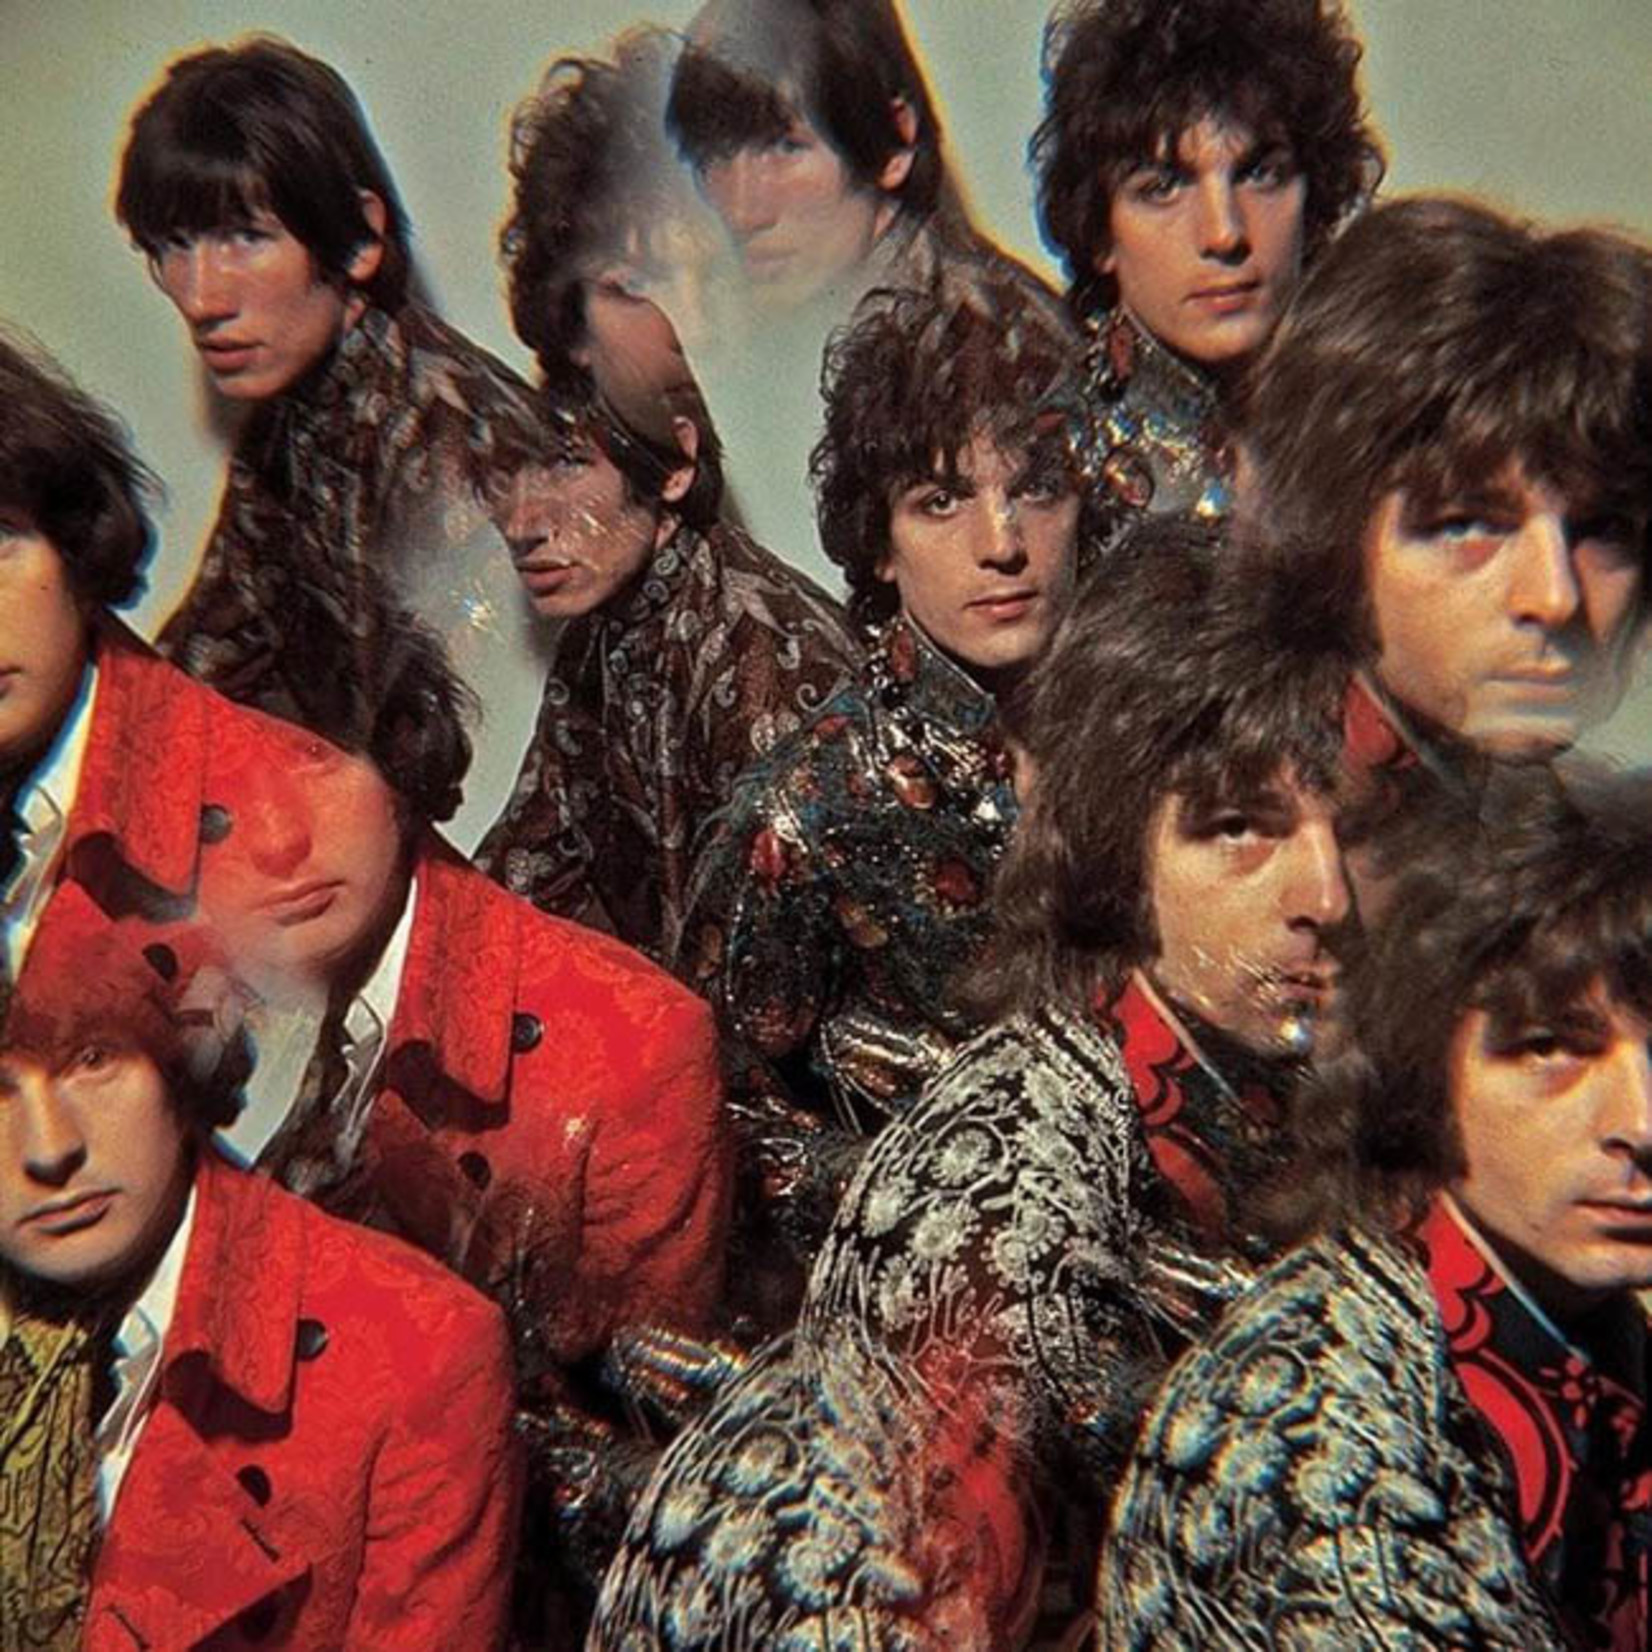 [New] Pink Floyd: The Piper At The Gates Of Dawn (2016 Version)